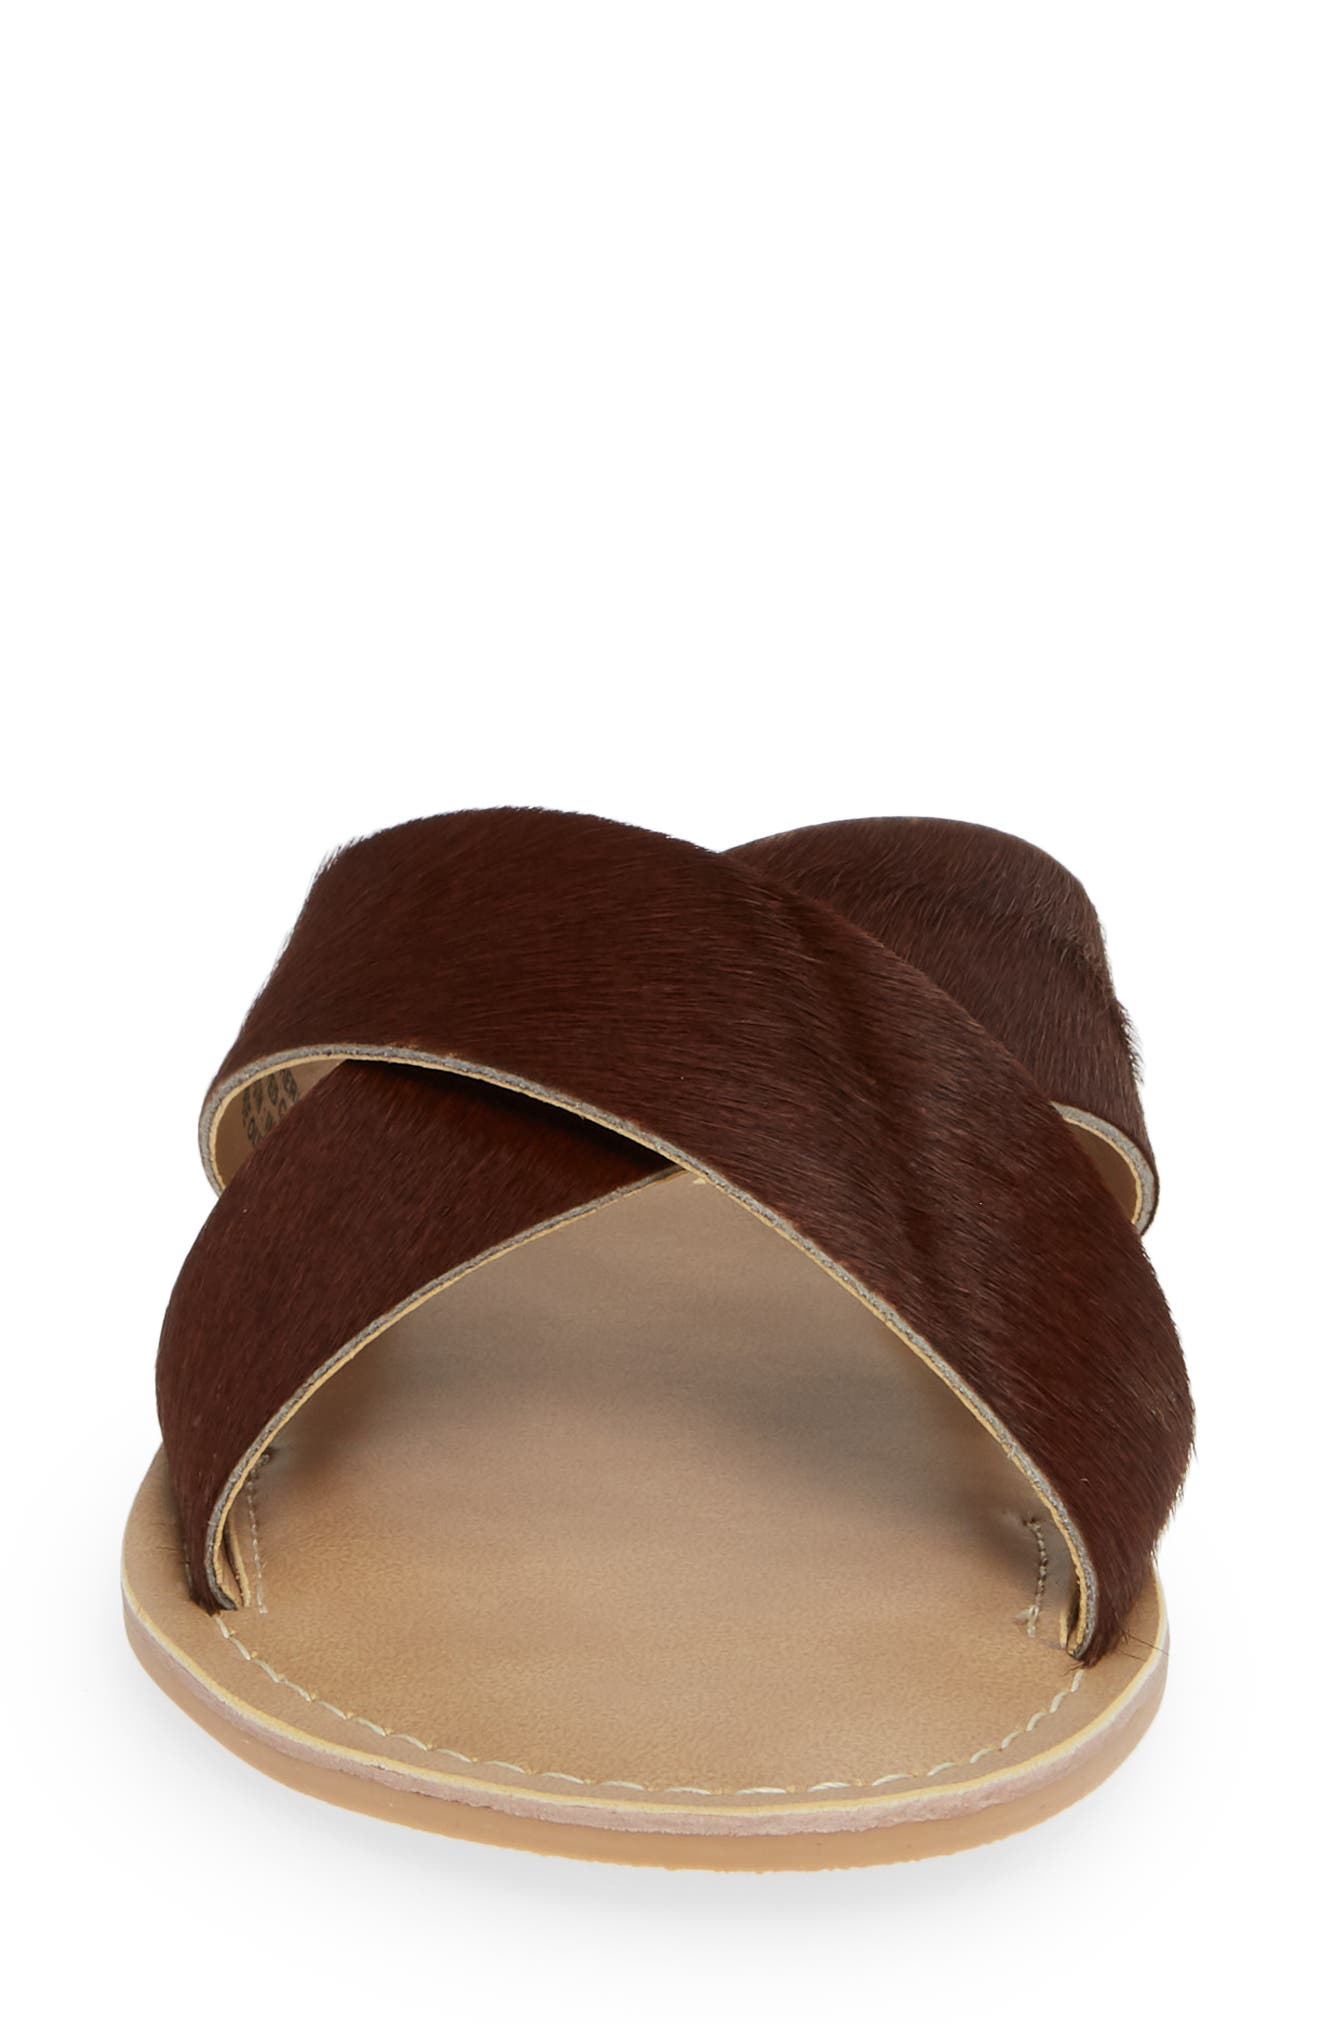 COCONUTS BY MATISSE, Pebble Genuine Calf Hair Slide Sandal, Alternate thumbnail 4, color, BROWN CALF HAIR